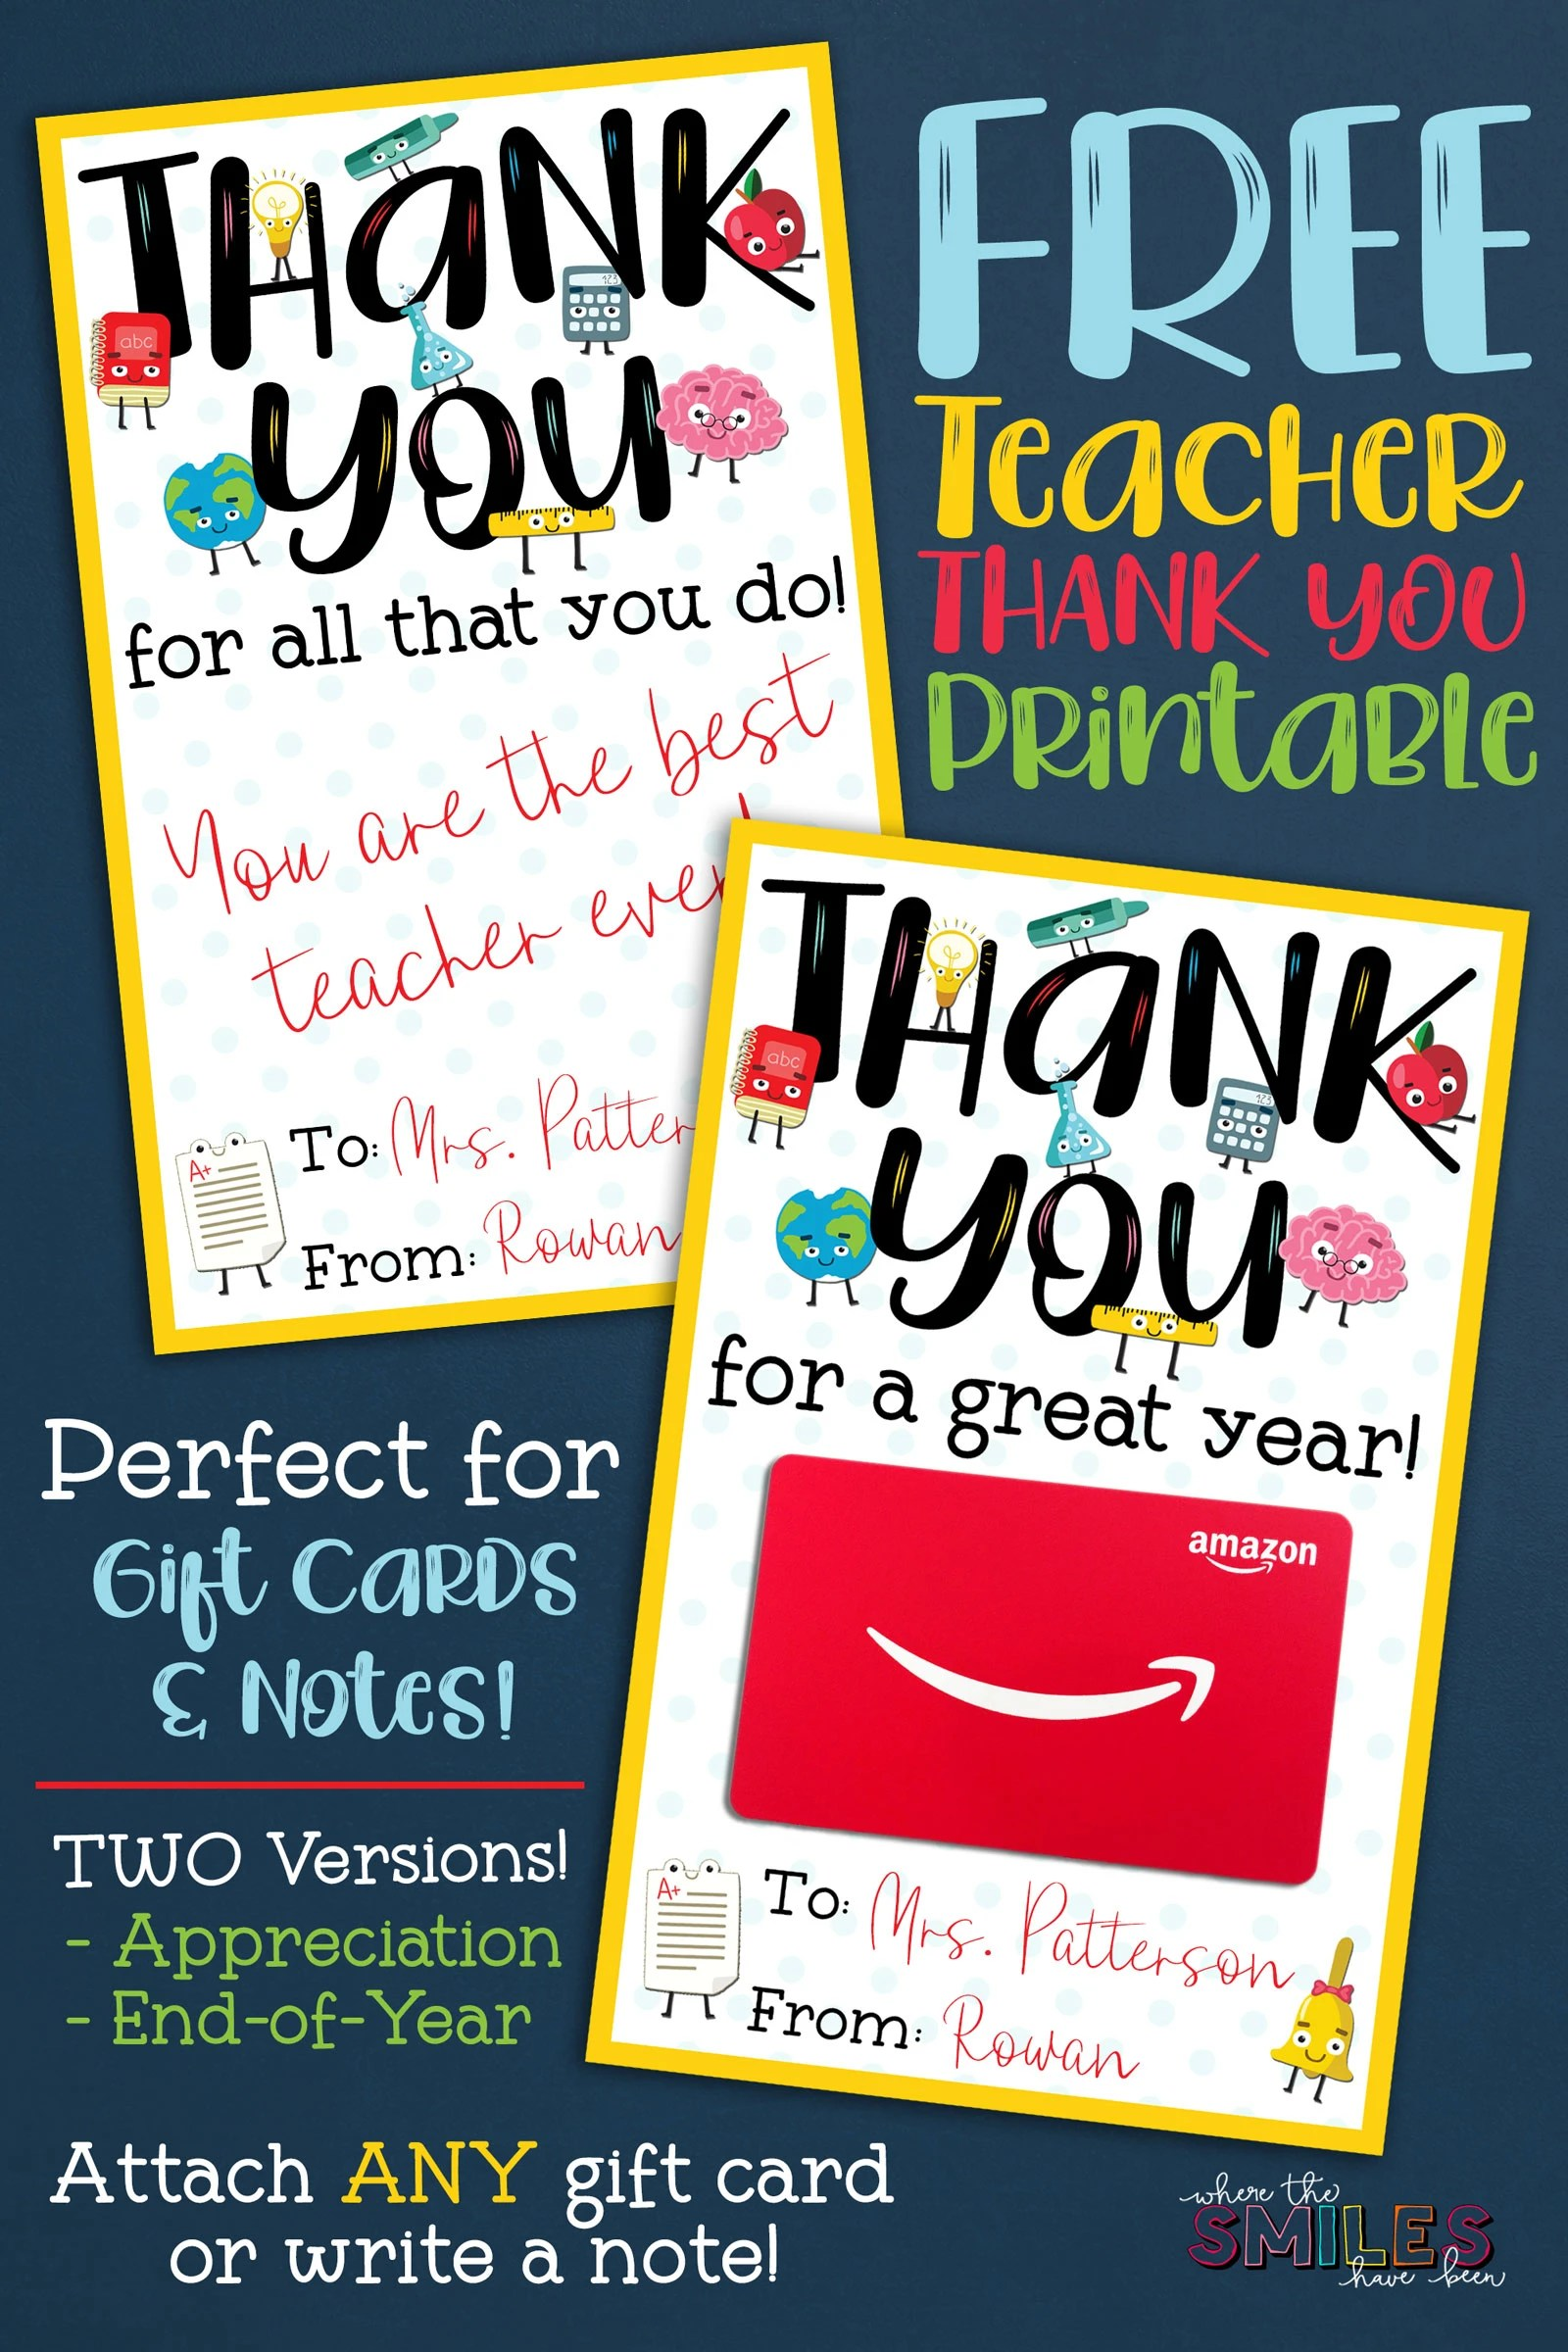 graphic regarding Teacher Appreciation Card Printable titled Free of charge Instructor Appreciation Thank Oneself Printable - 2 Types!